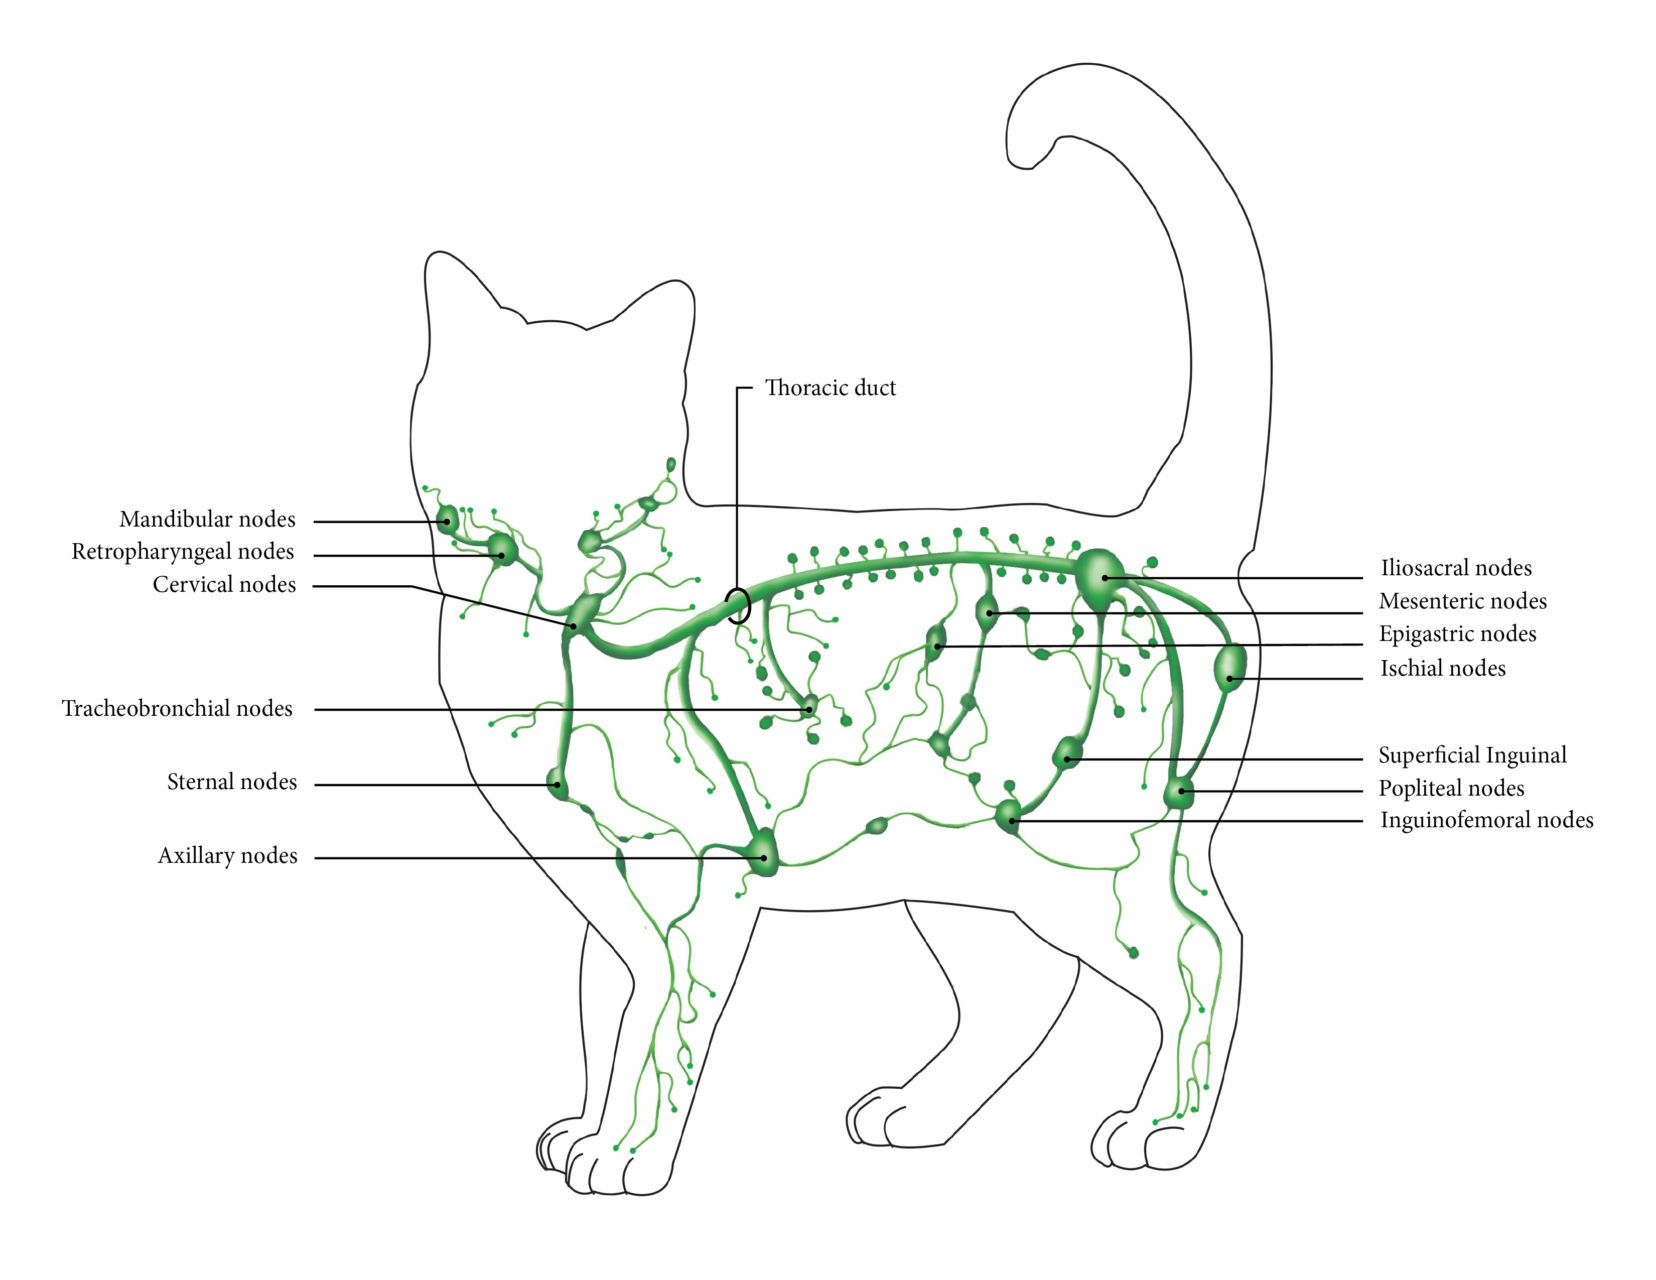 Mouse Dissection Diagram Swift Hot Water System Wiring Cat Mesentery All Data Image Result For Of A S Lymphatic Feline Health Female Abdomen Anatomy Internal Organs Human